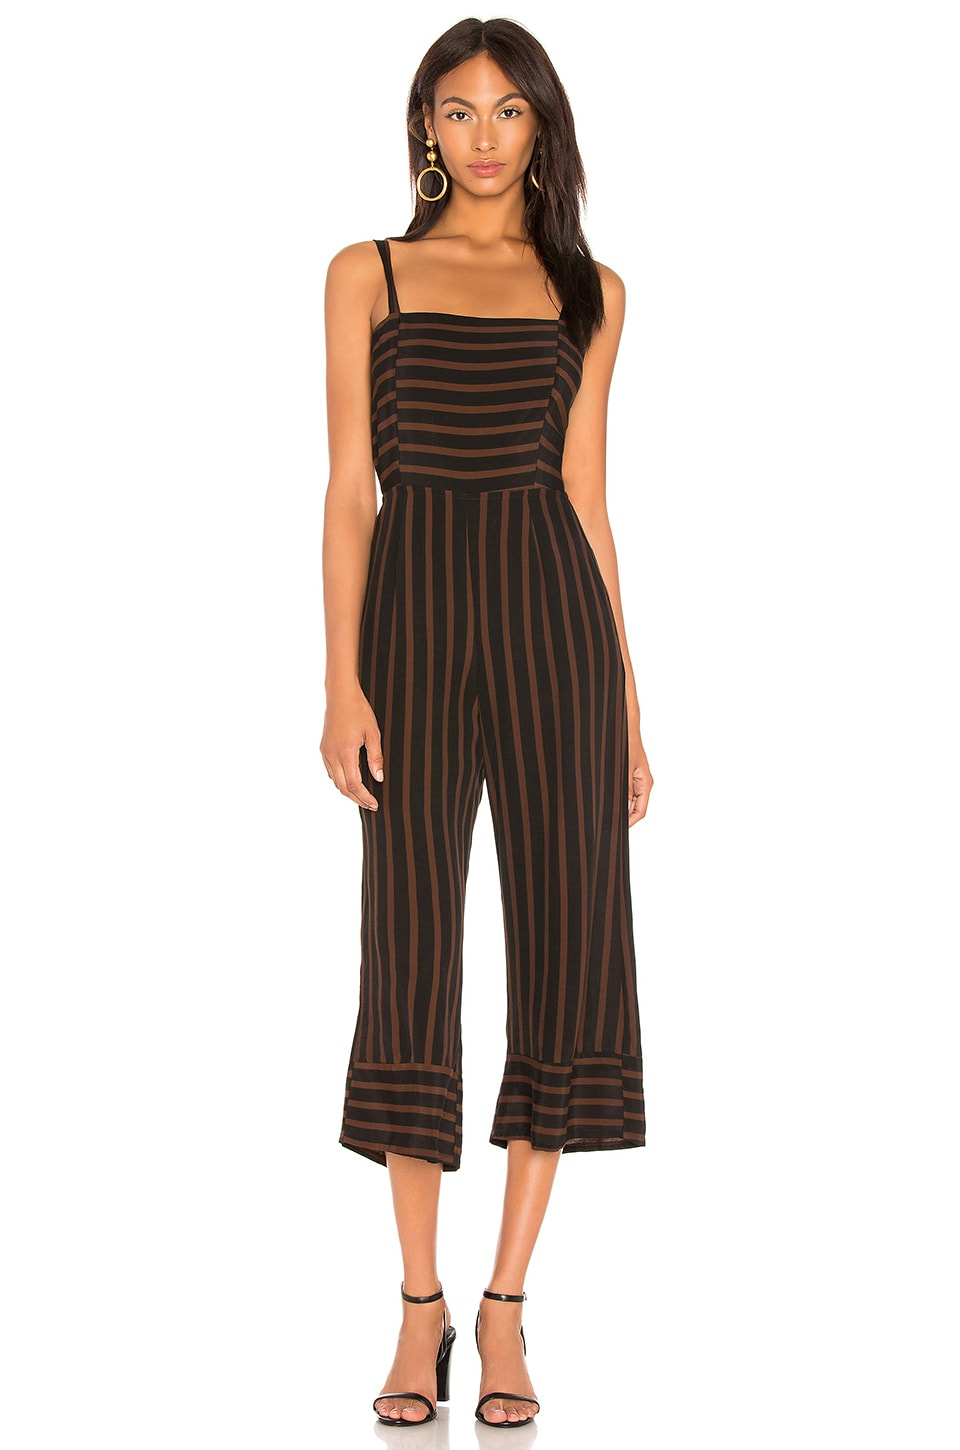 Guanabo Tie Back Stripe Jumpsuit in Brown